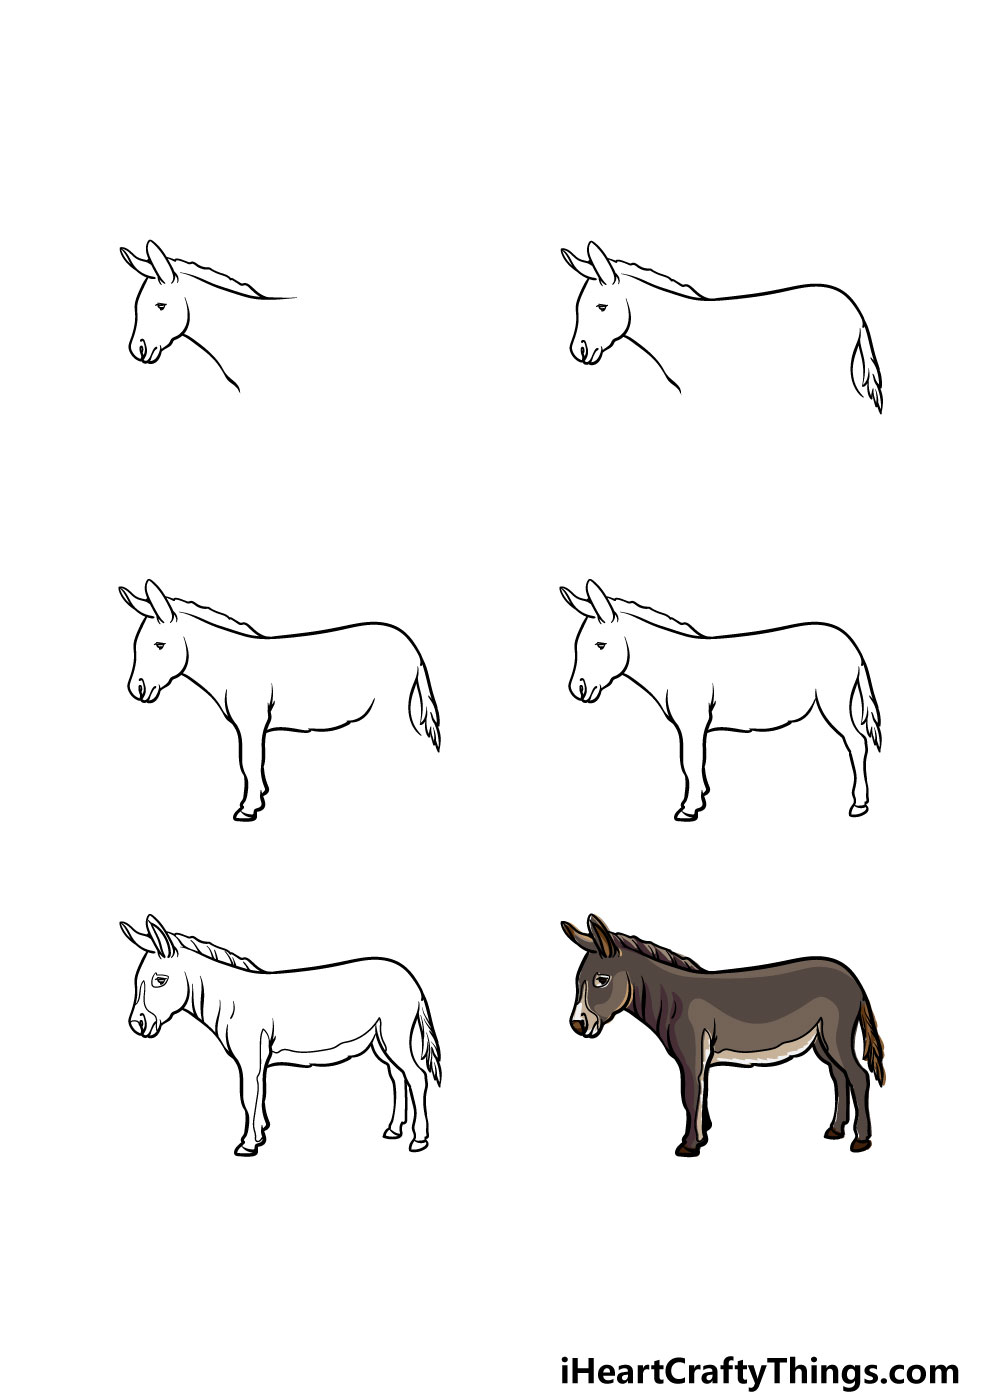 how to draw a donkey in 6 steps